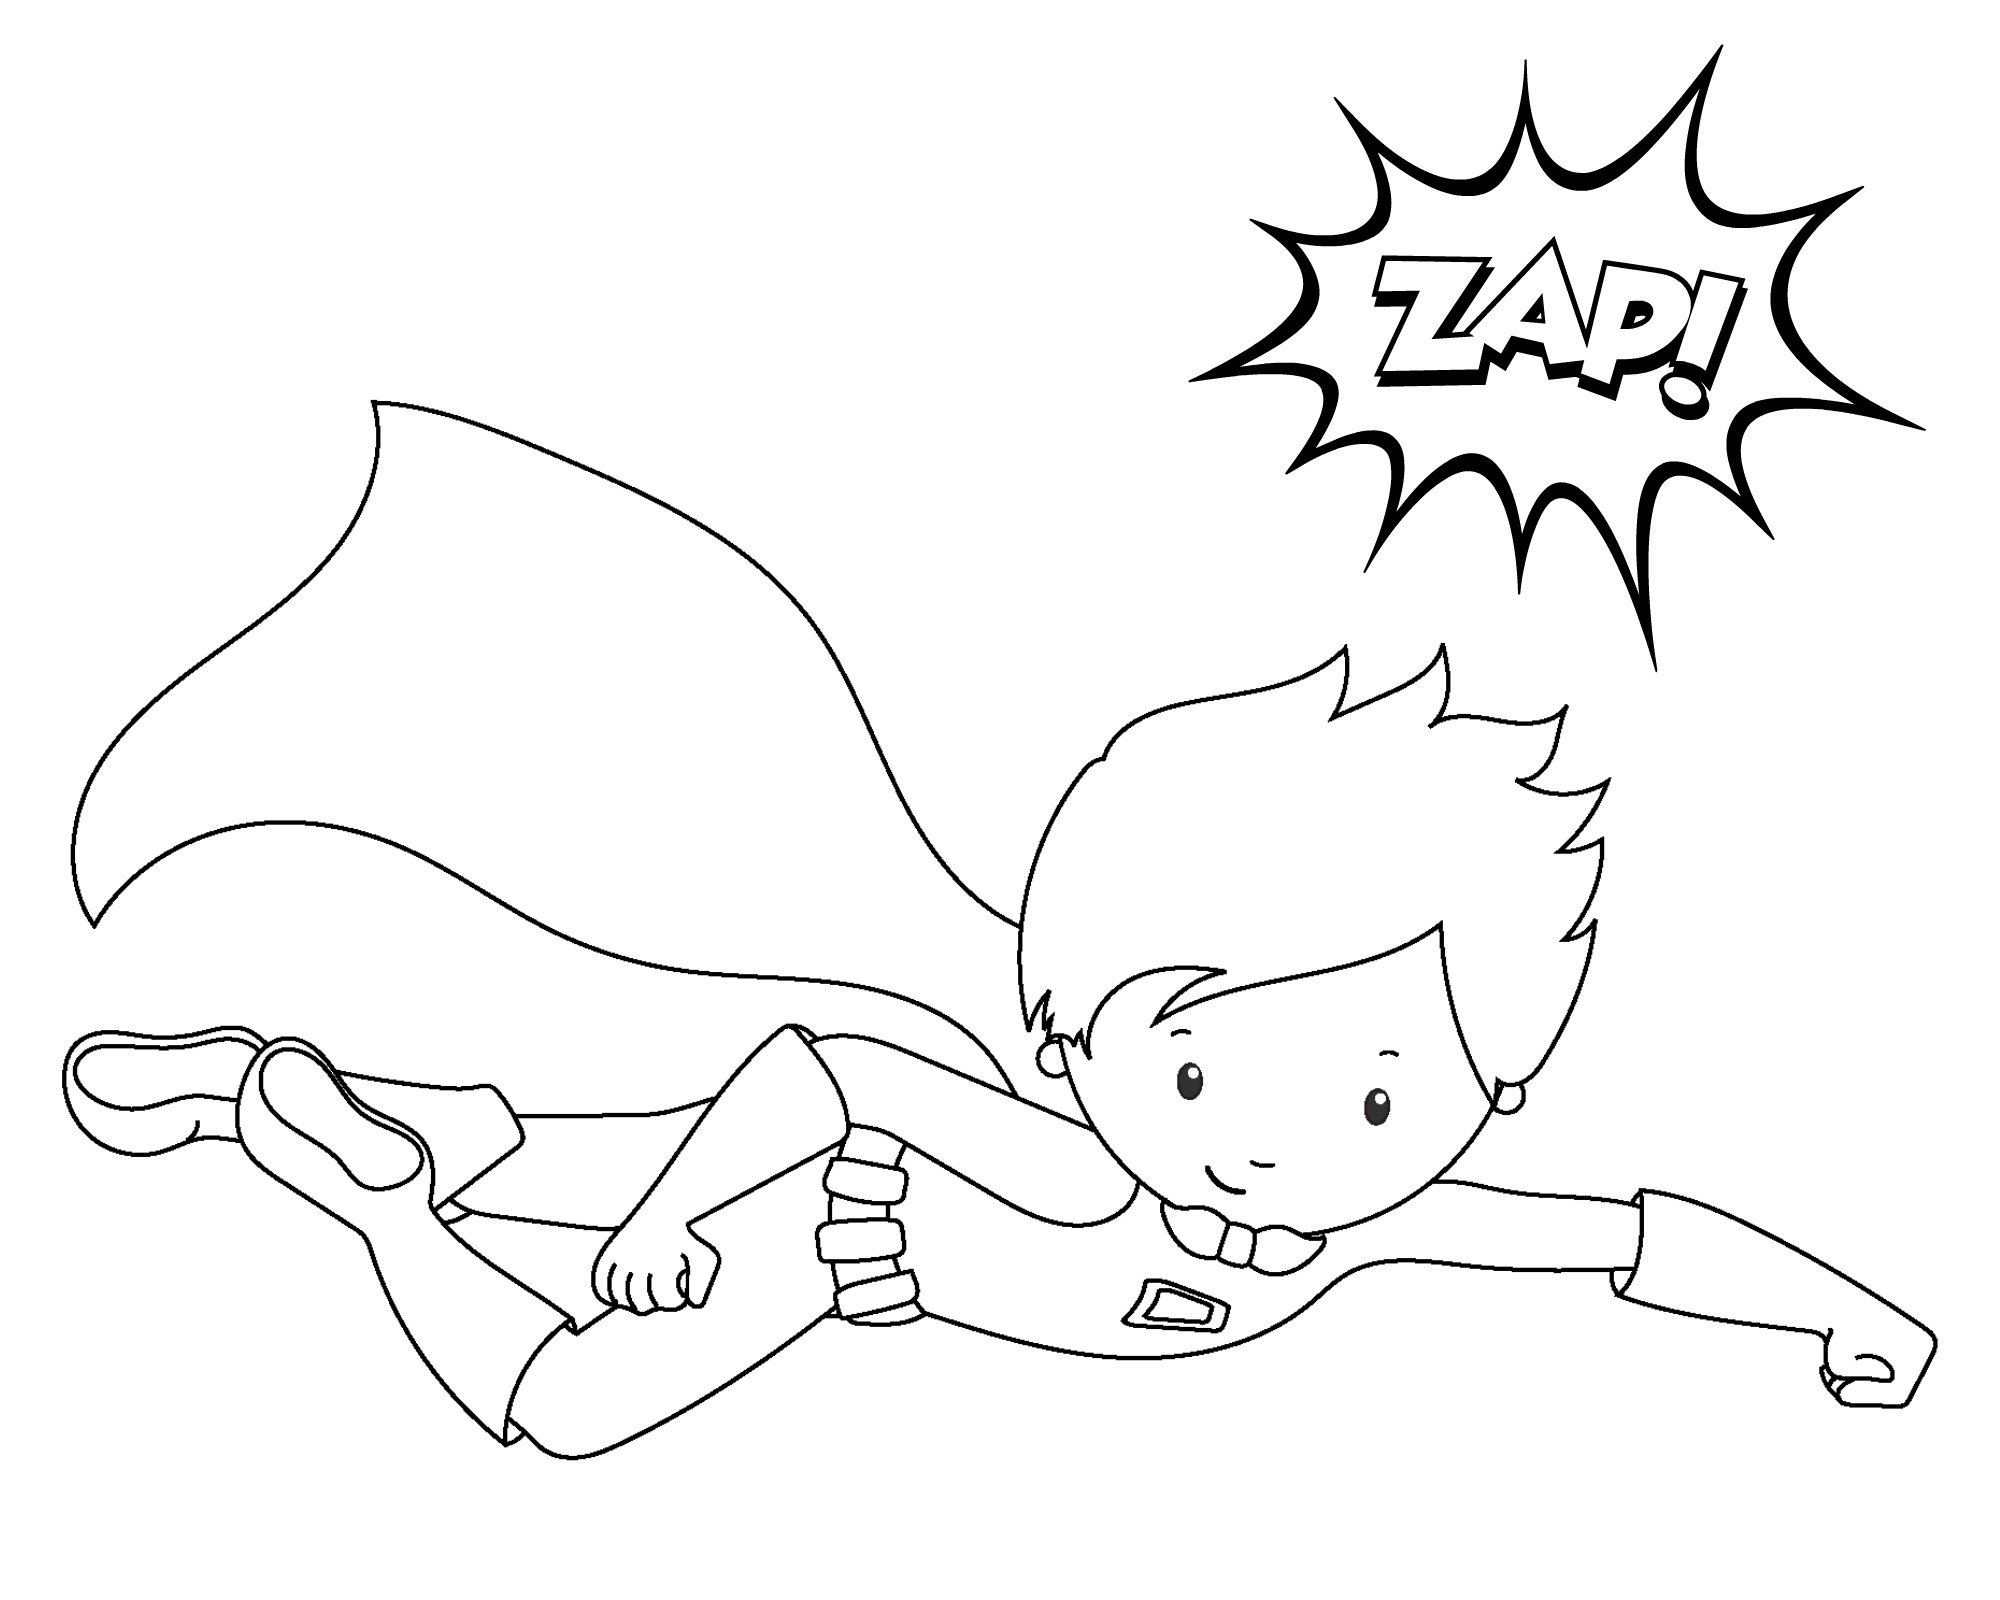 Kid Superhero Drawing At Getdrawings